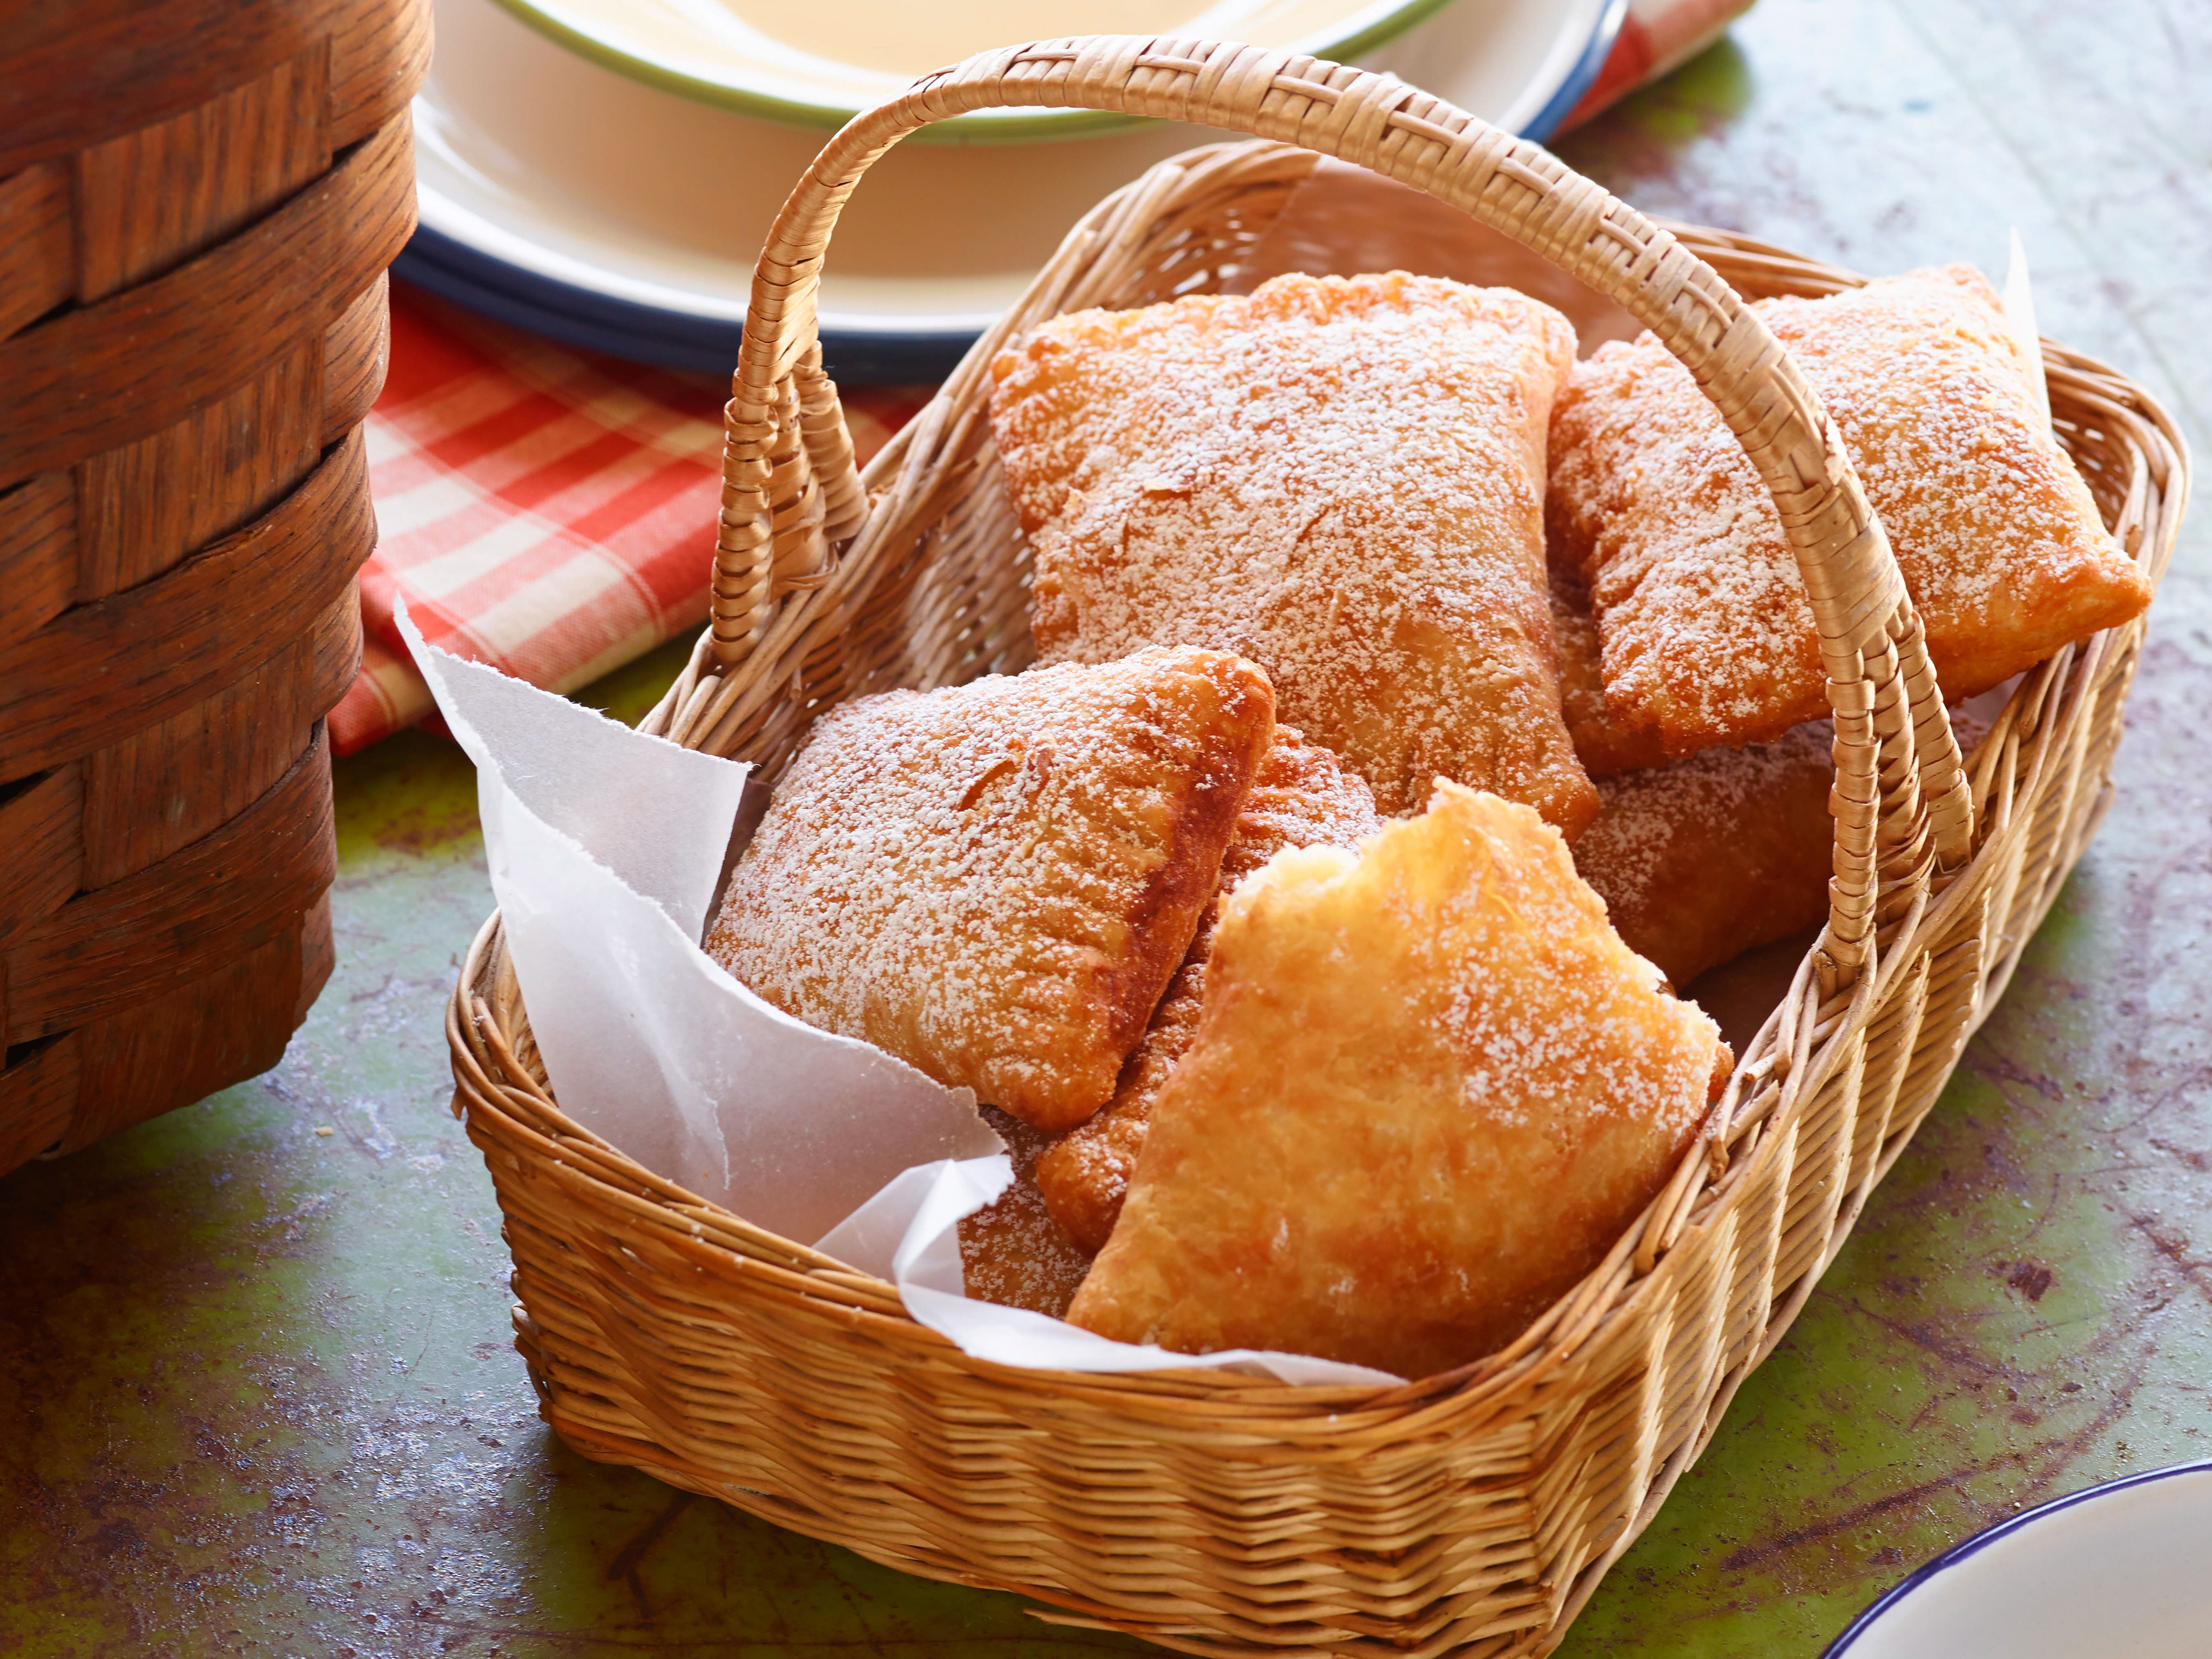 Ree Drummond Desserts  Fried Pies Recipe Ree Drummond Food Network